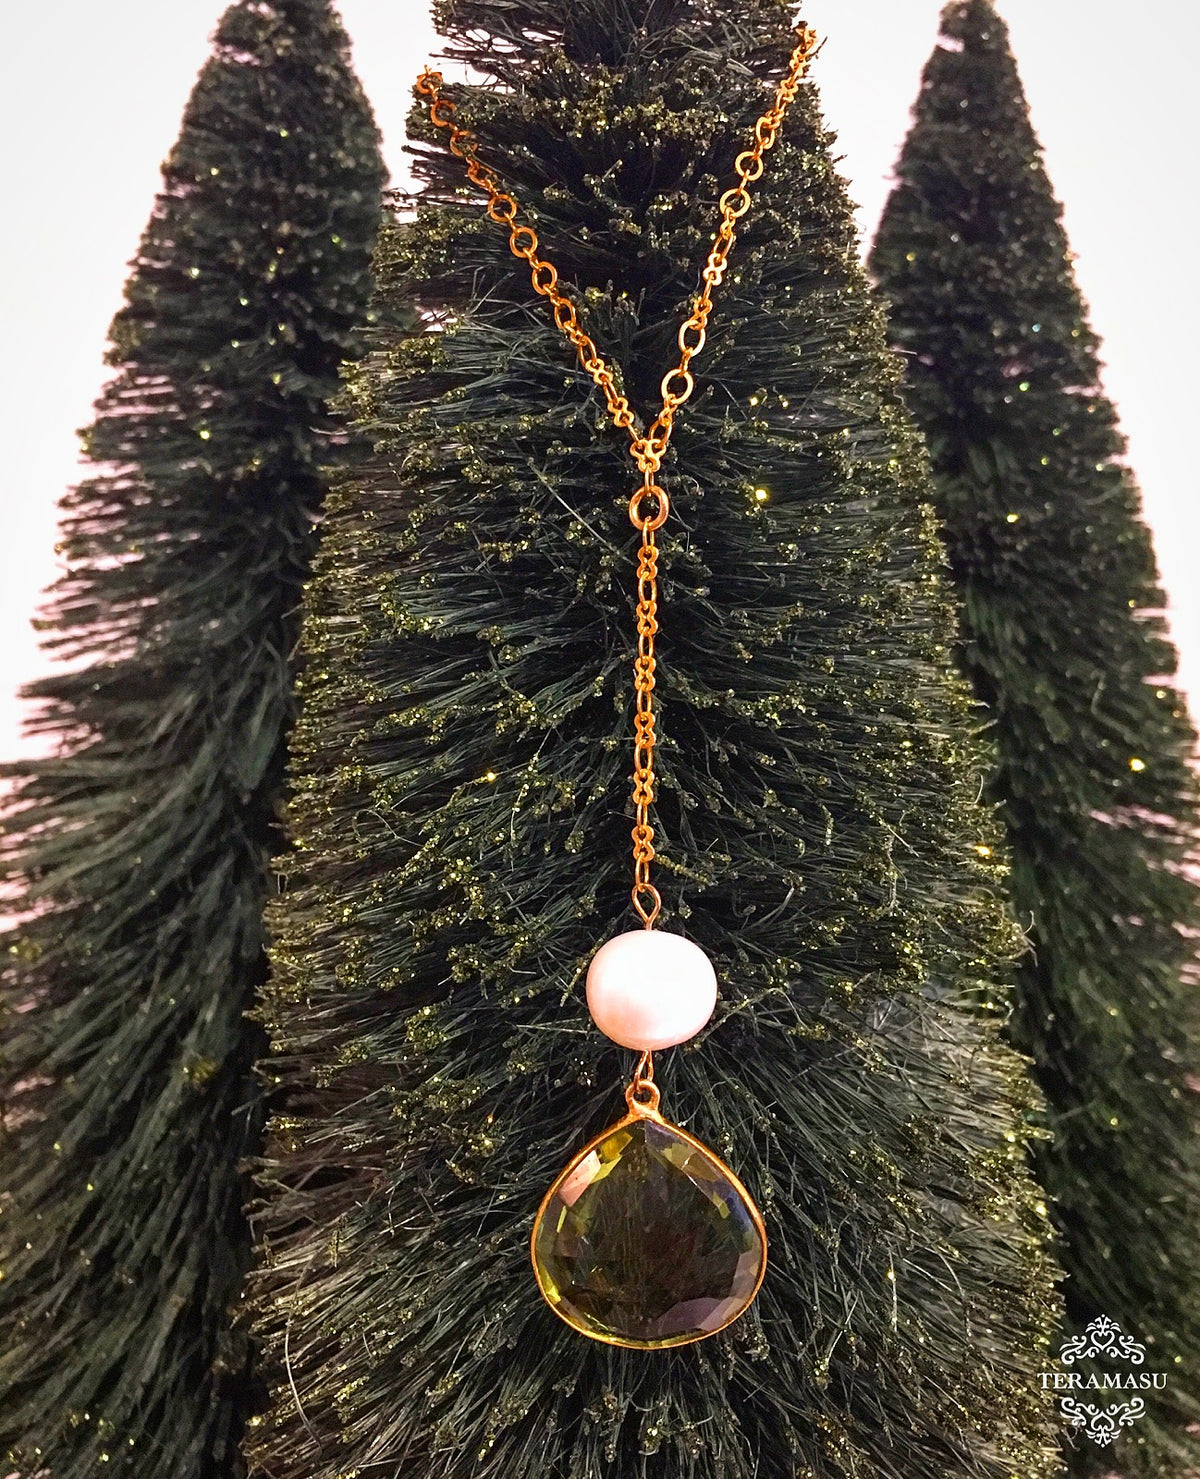 Friday Favorite: Gorgeous & New, Handmade Designer Teramasu Green Amethyst & Pearl Drop on Y Chain Gold Necklace